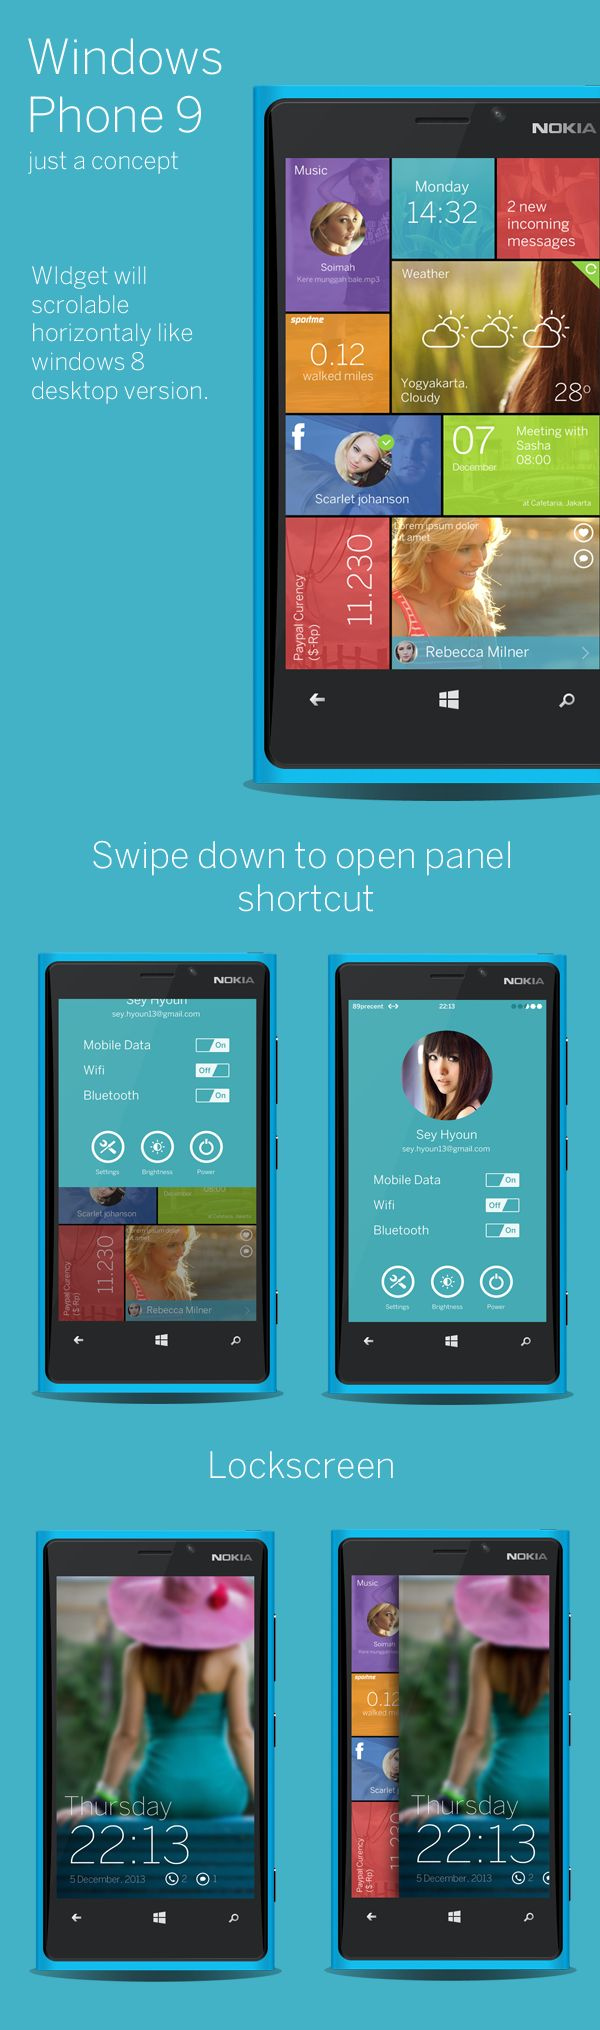 Windows Phone 9 concept by Ghani Pradita, via Behance